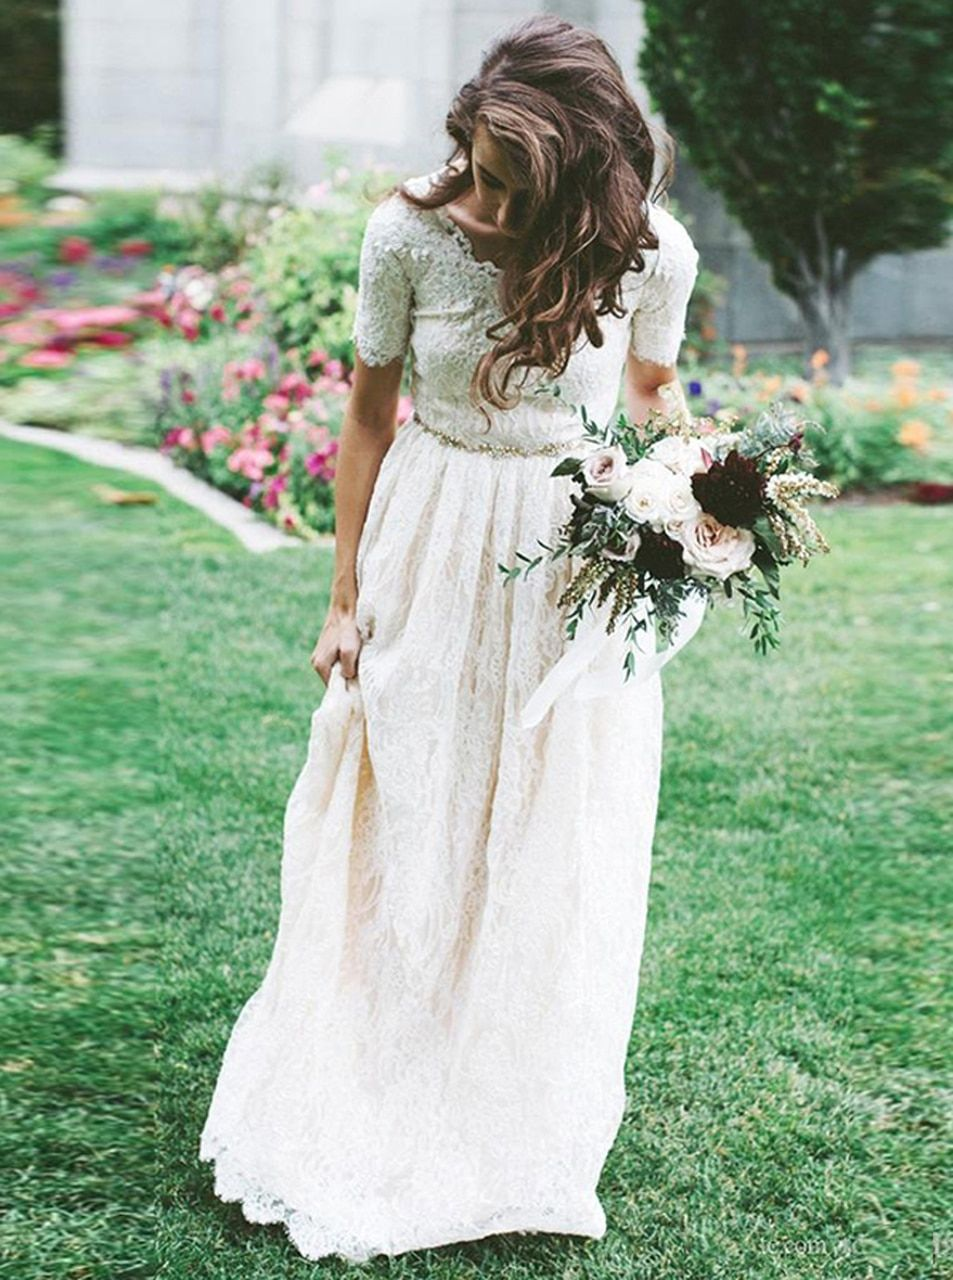 Vintage Lace Wedding Dress With Short Sleeves Modest Bridal Dress With Beaded Belt 12237 Wedding Dresses Lace Bridal Gown Wedding Dresses Lace [ 1280 x 953 Pixel ]